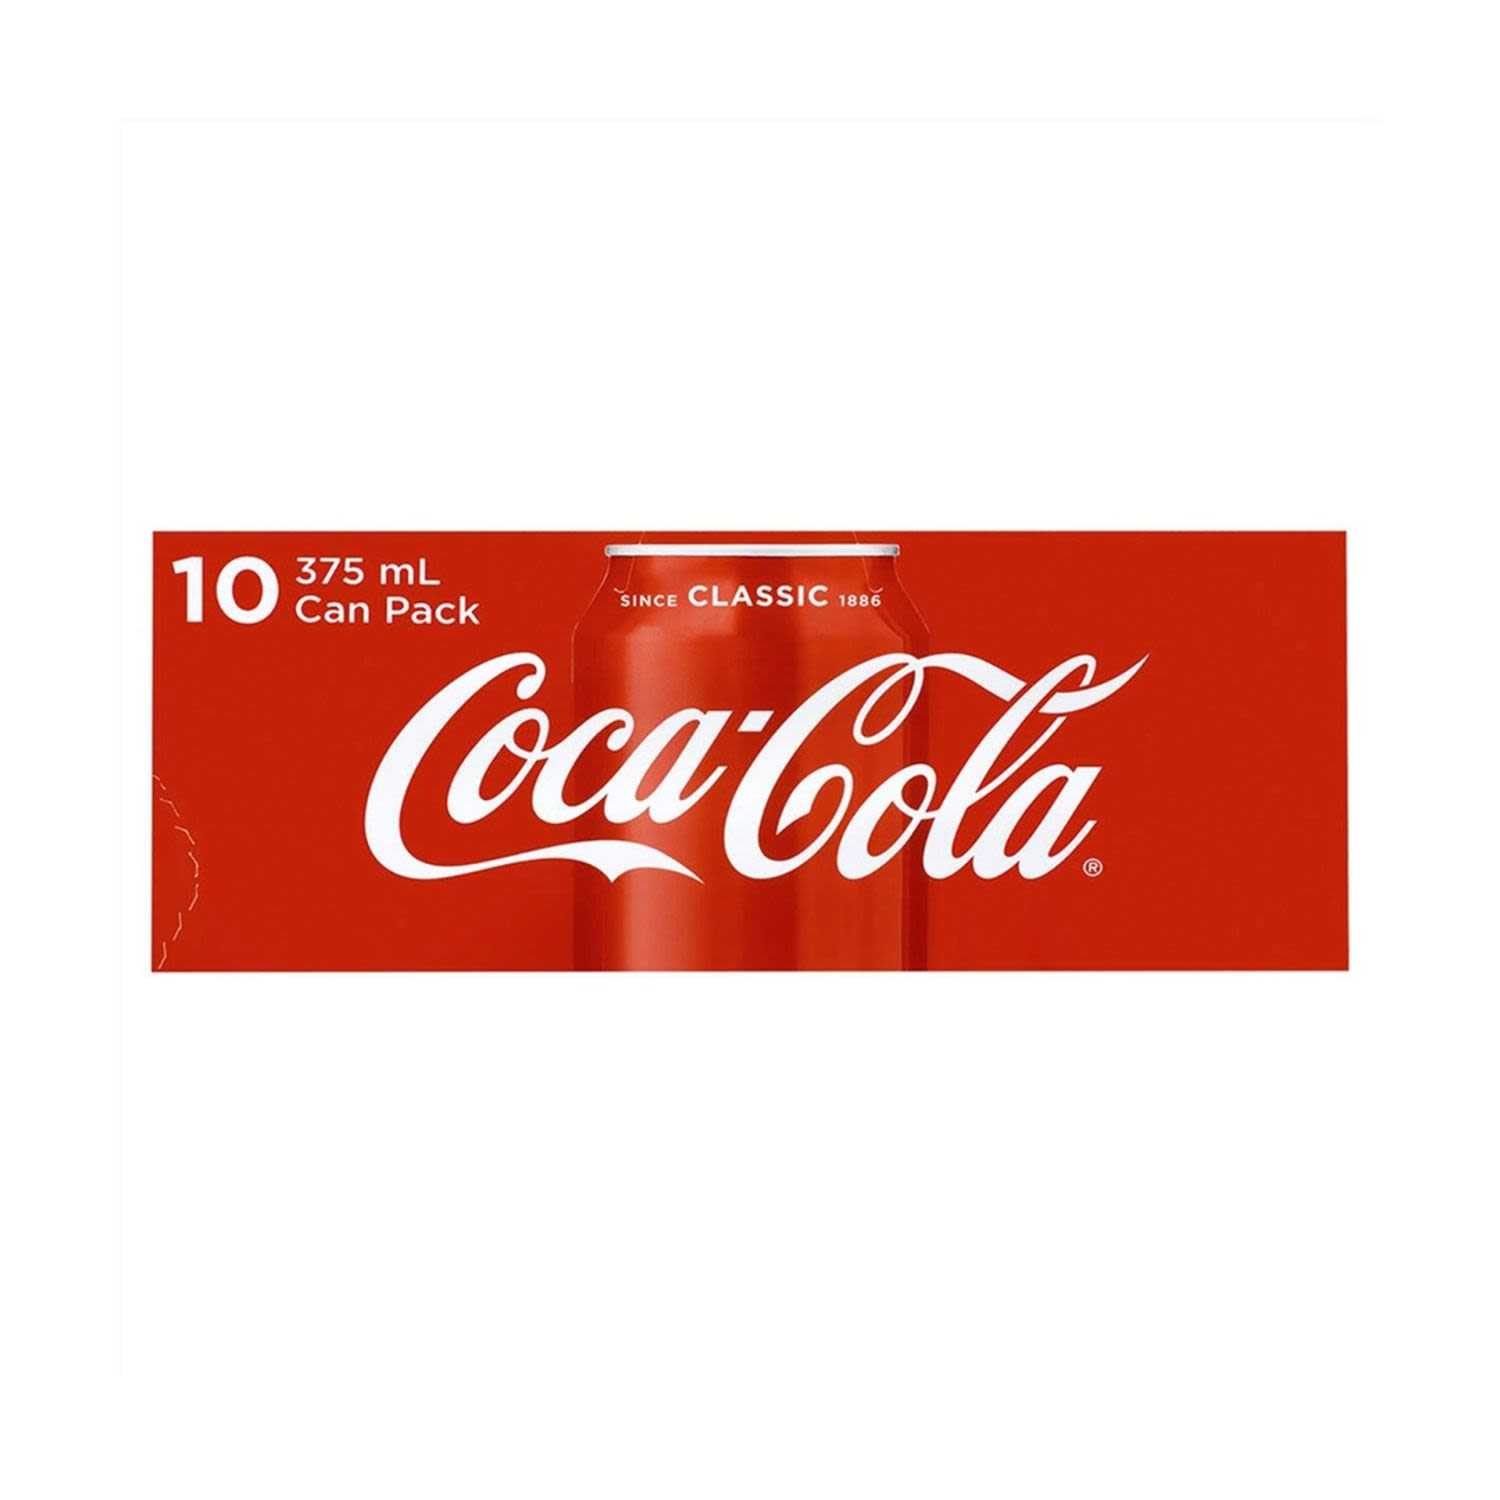 Coca-Cola Classic Multipack Cans, 10 Each